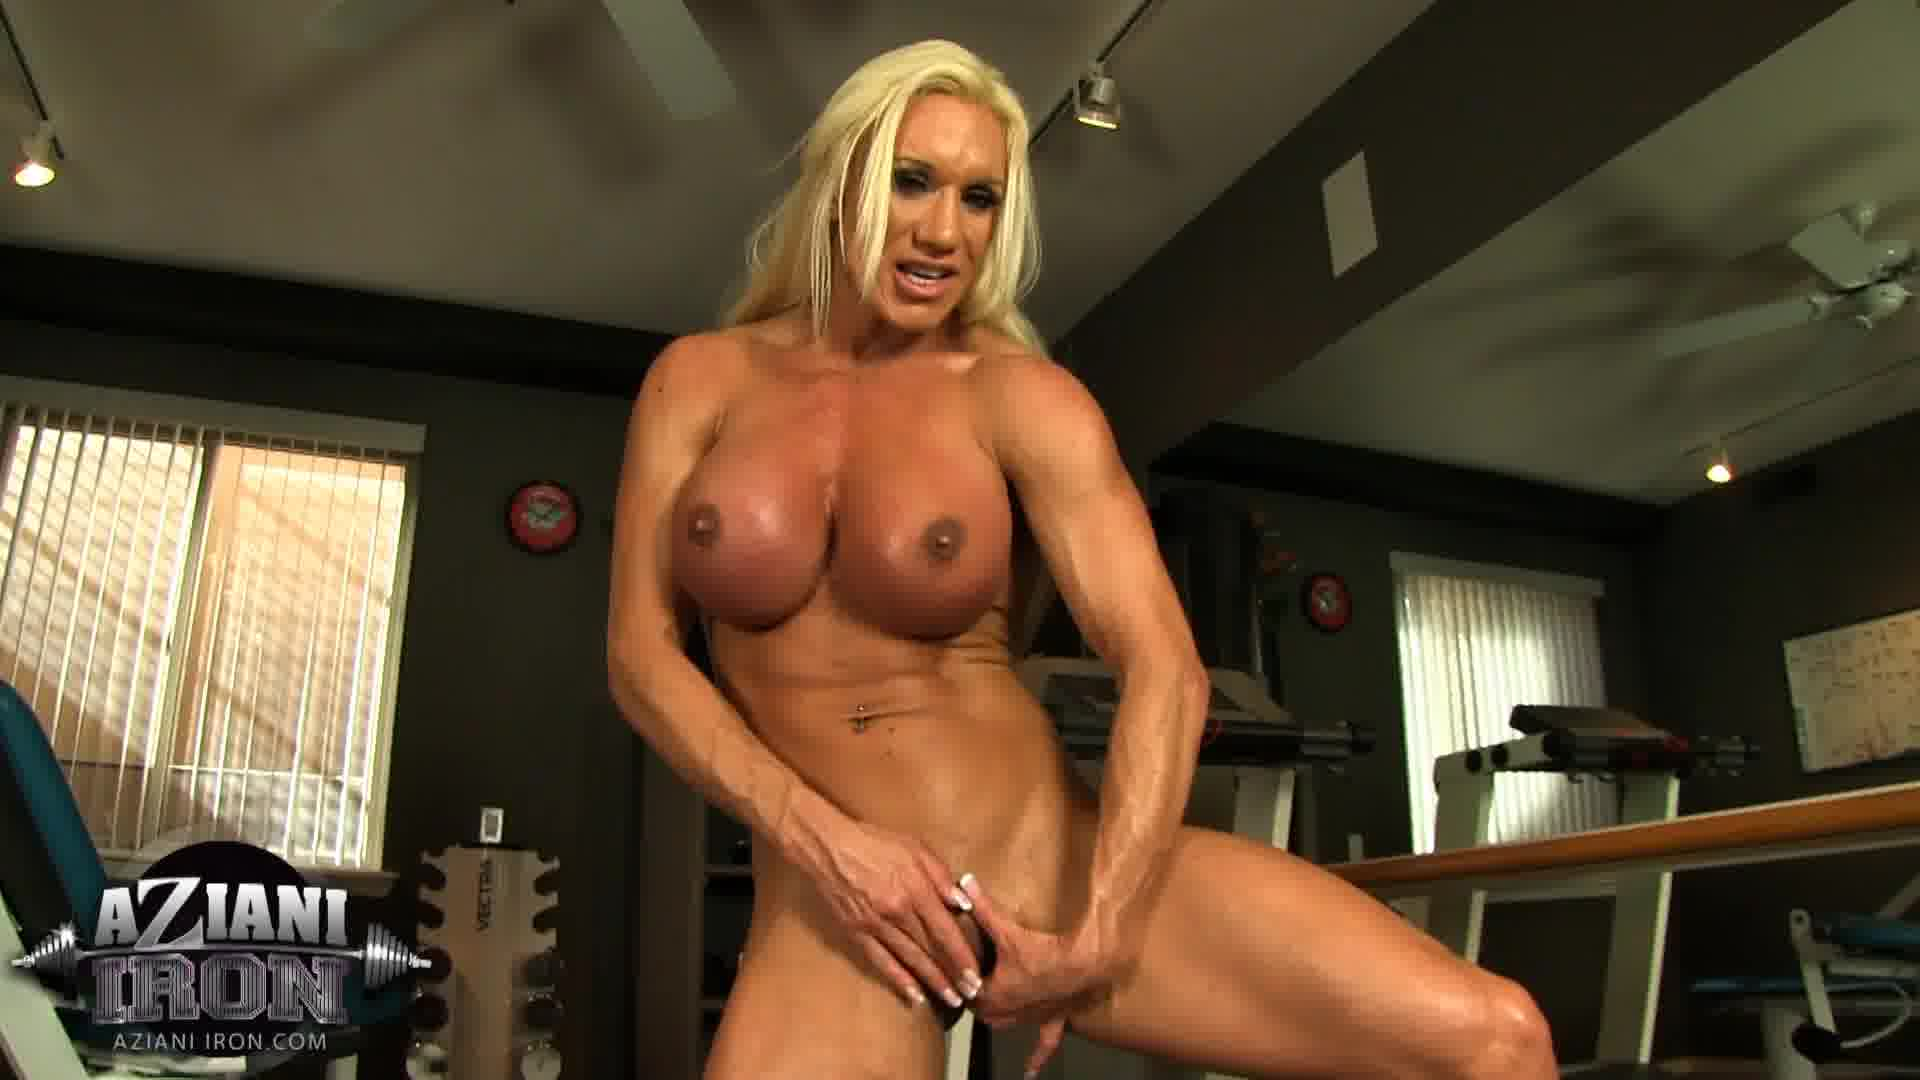 Naked female bodybuilder ashlee chambers sexy workout 8